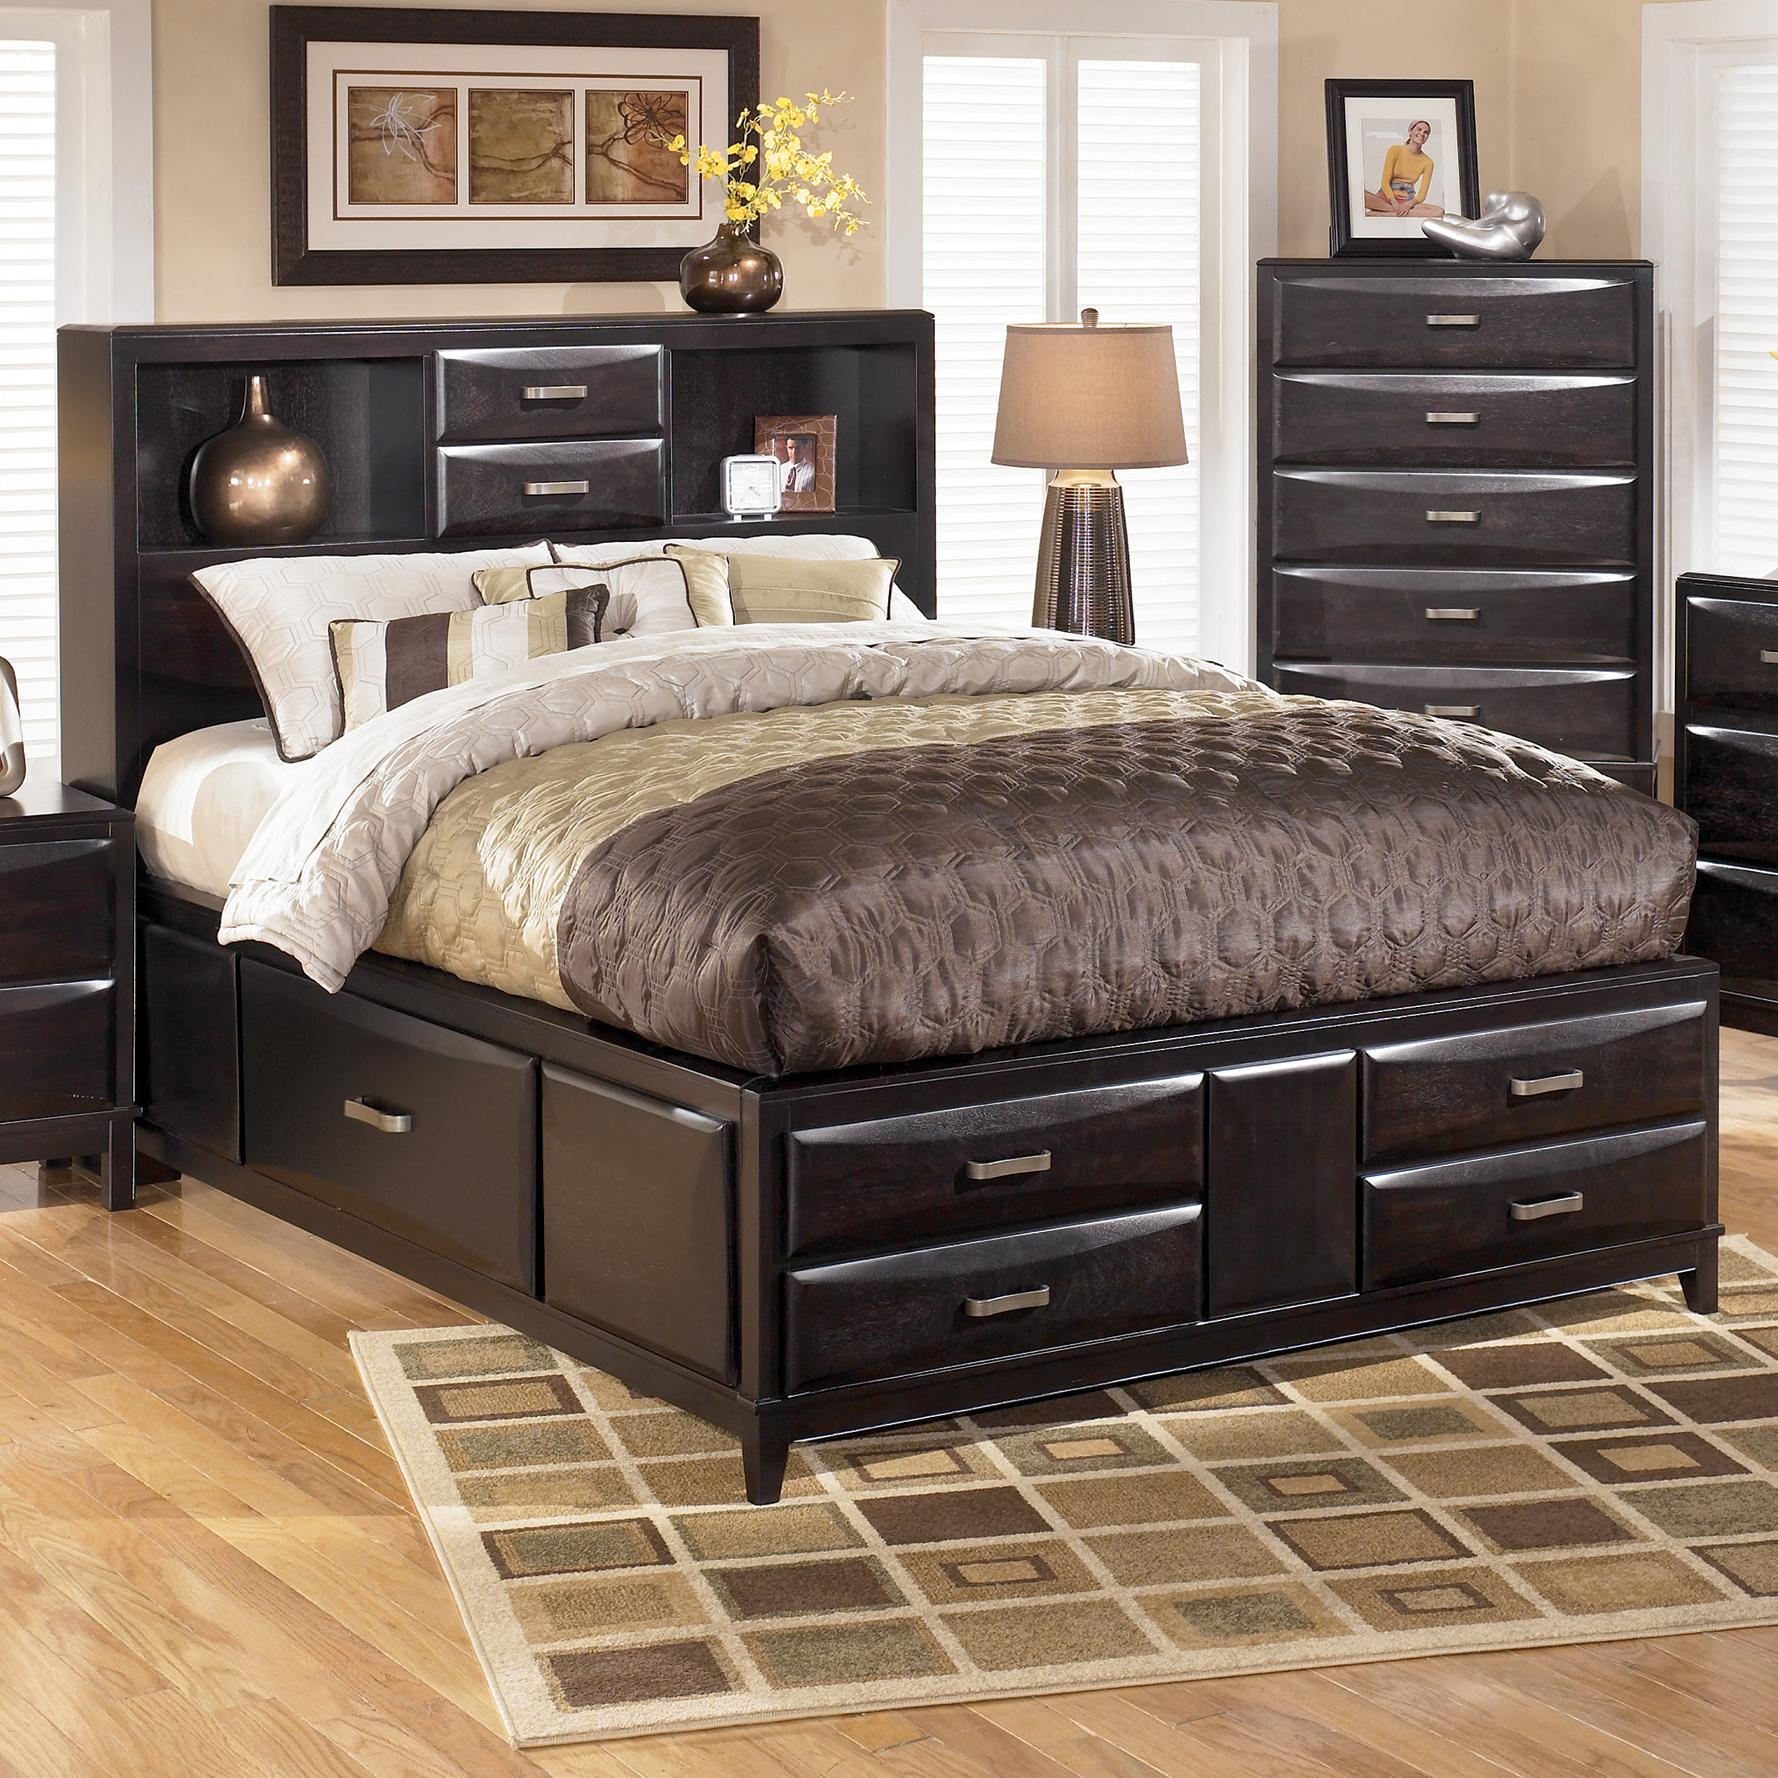 Ashley Furniture Kira Cal King Storage Bed Dunk Bright Furniture Captain 39 S Beds